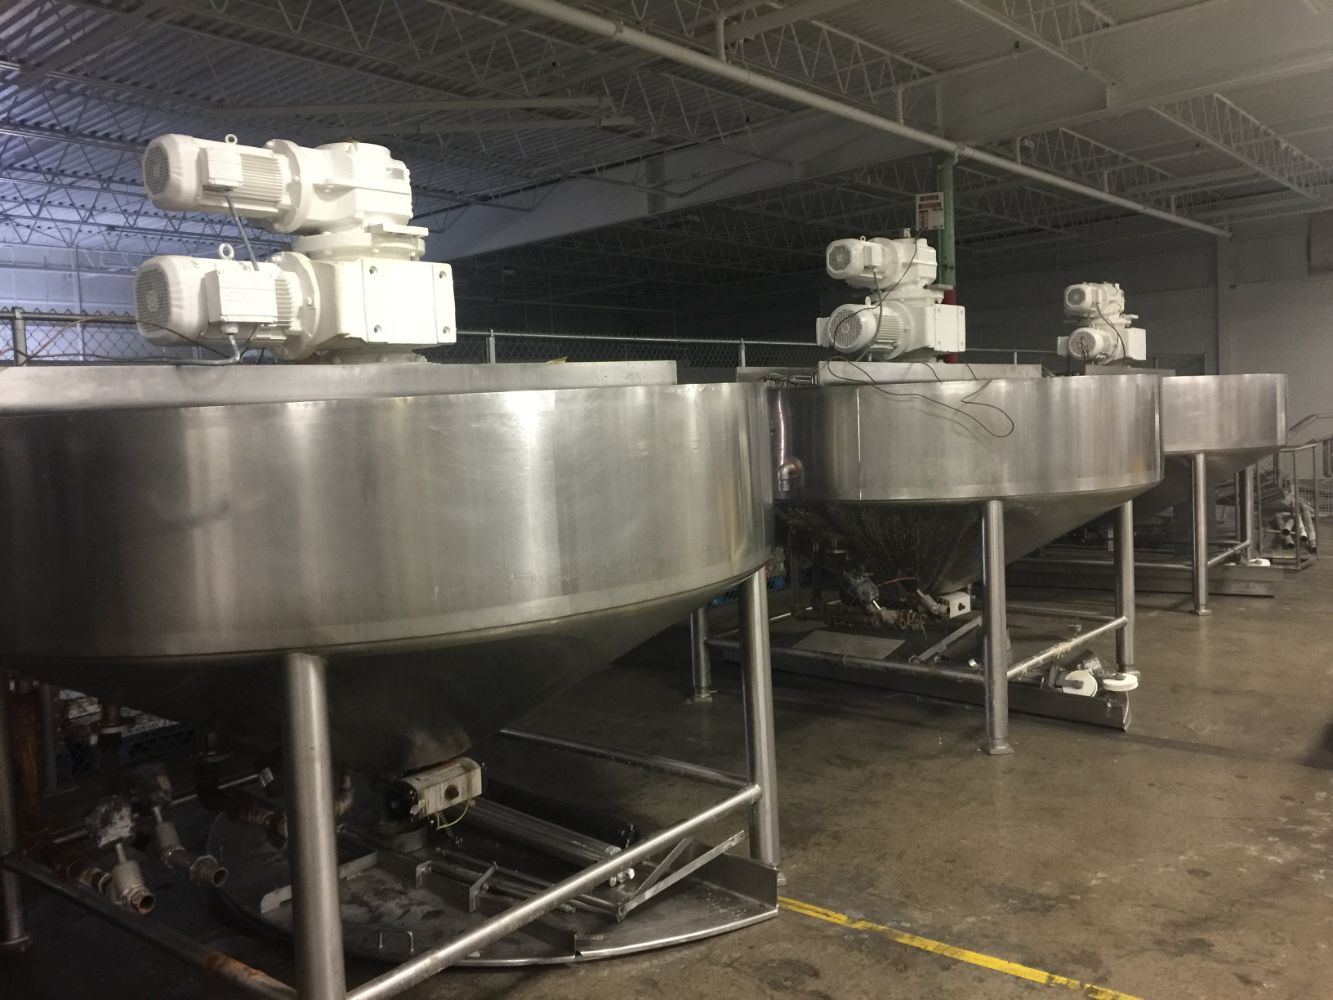 Conagra Brands 13 location auction of surplus food manufacturing equipment. Corporate Auction Group